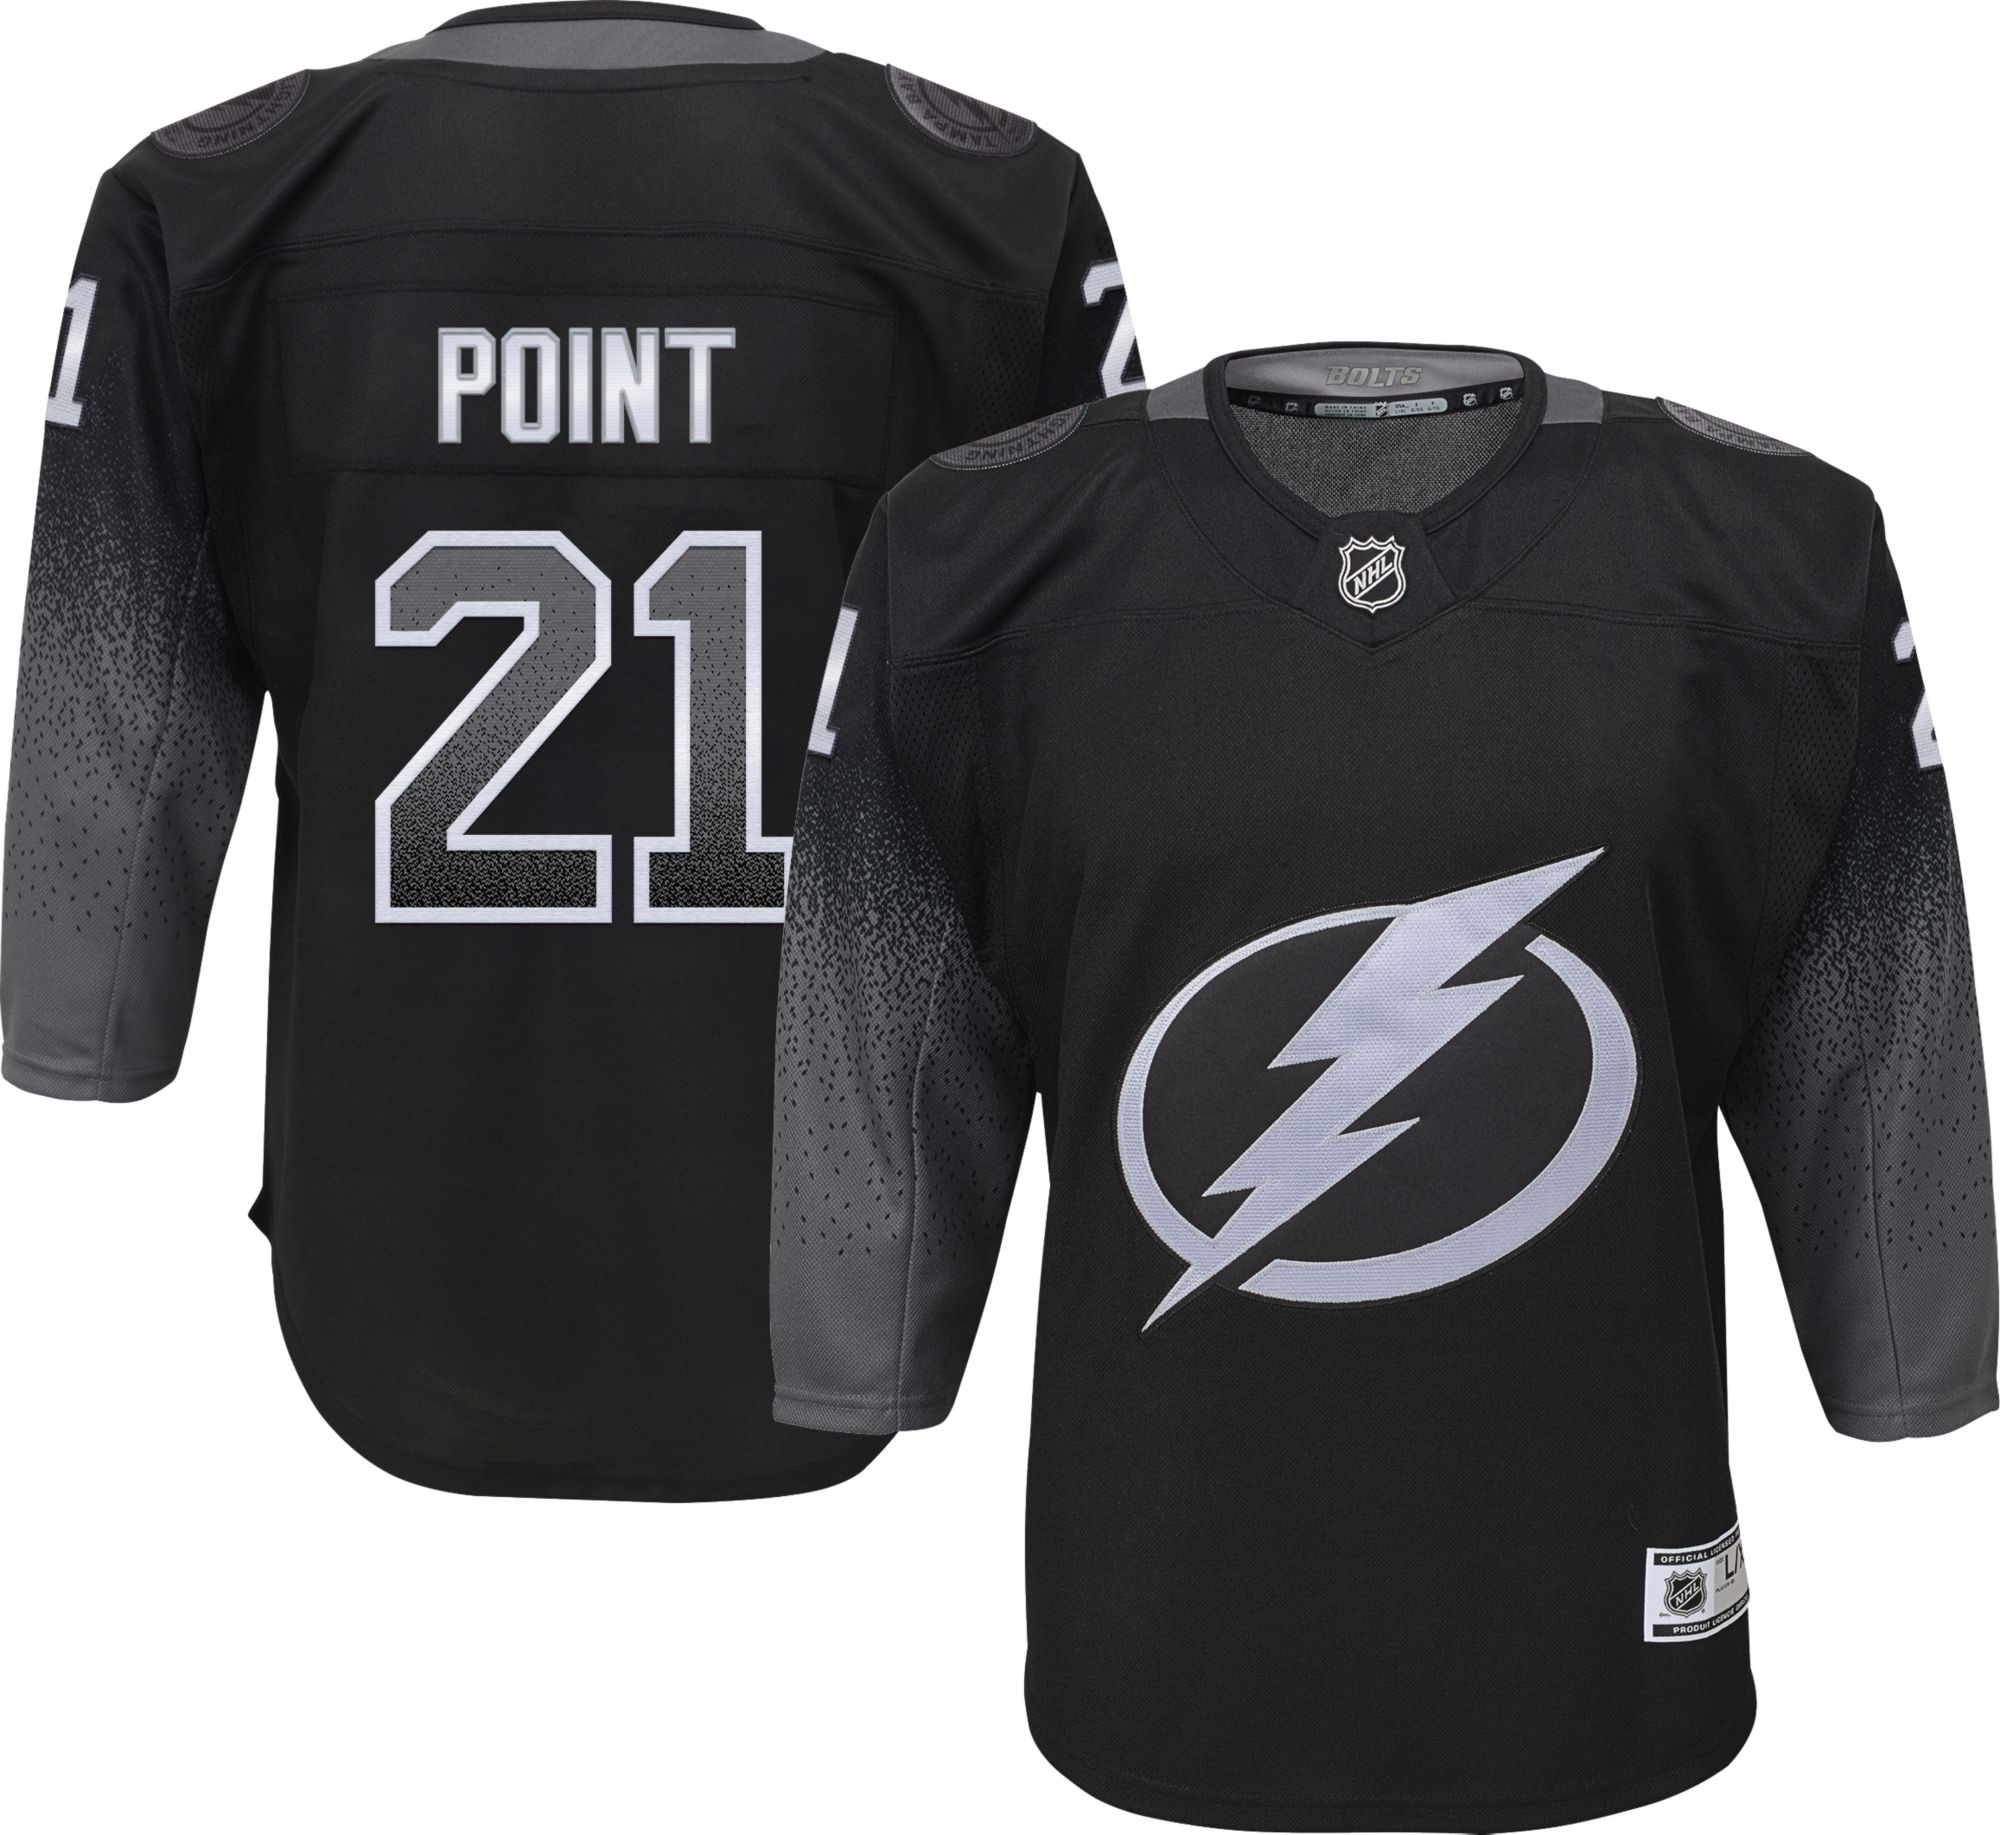 tampa bolts jersey